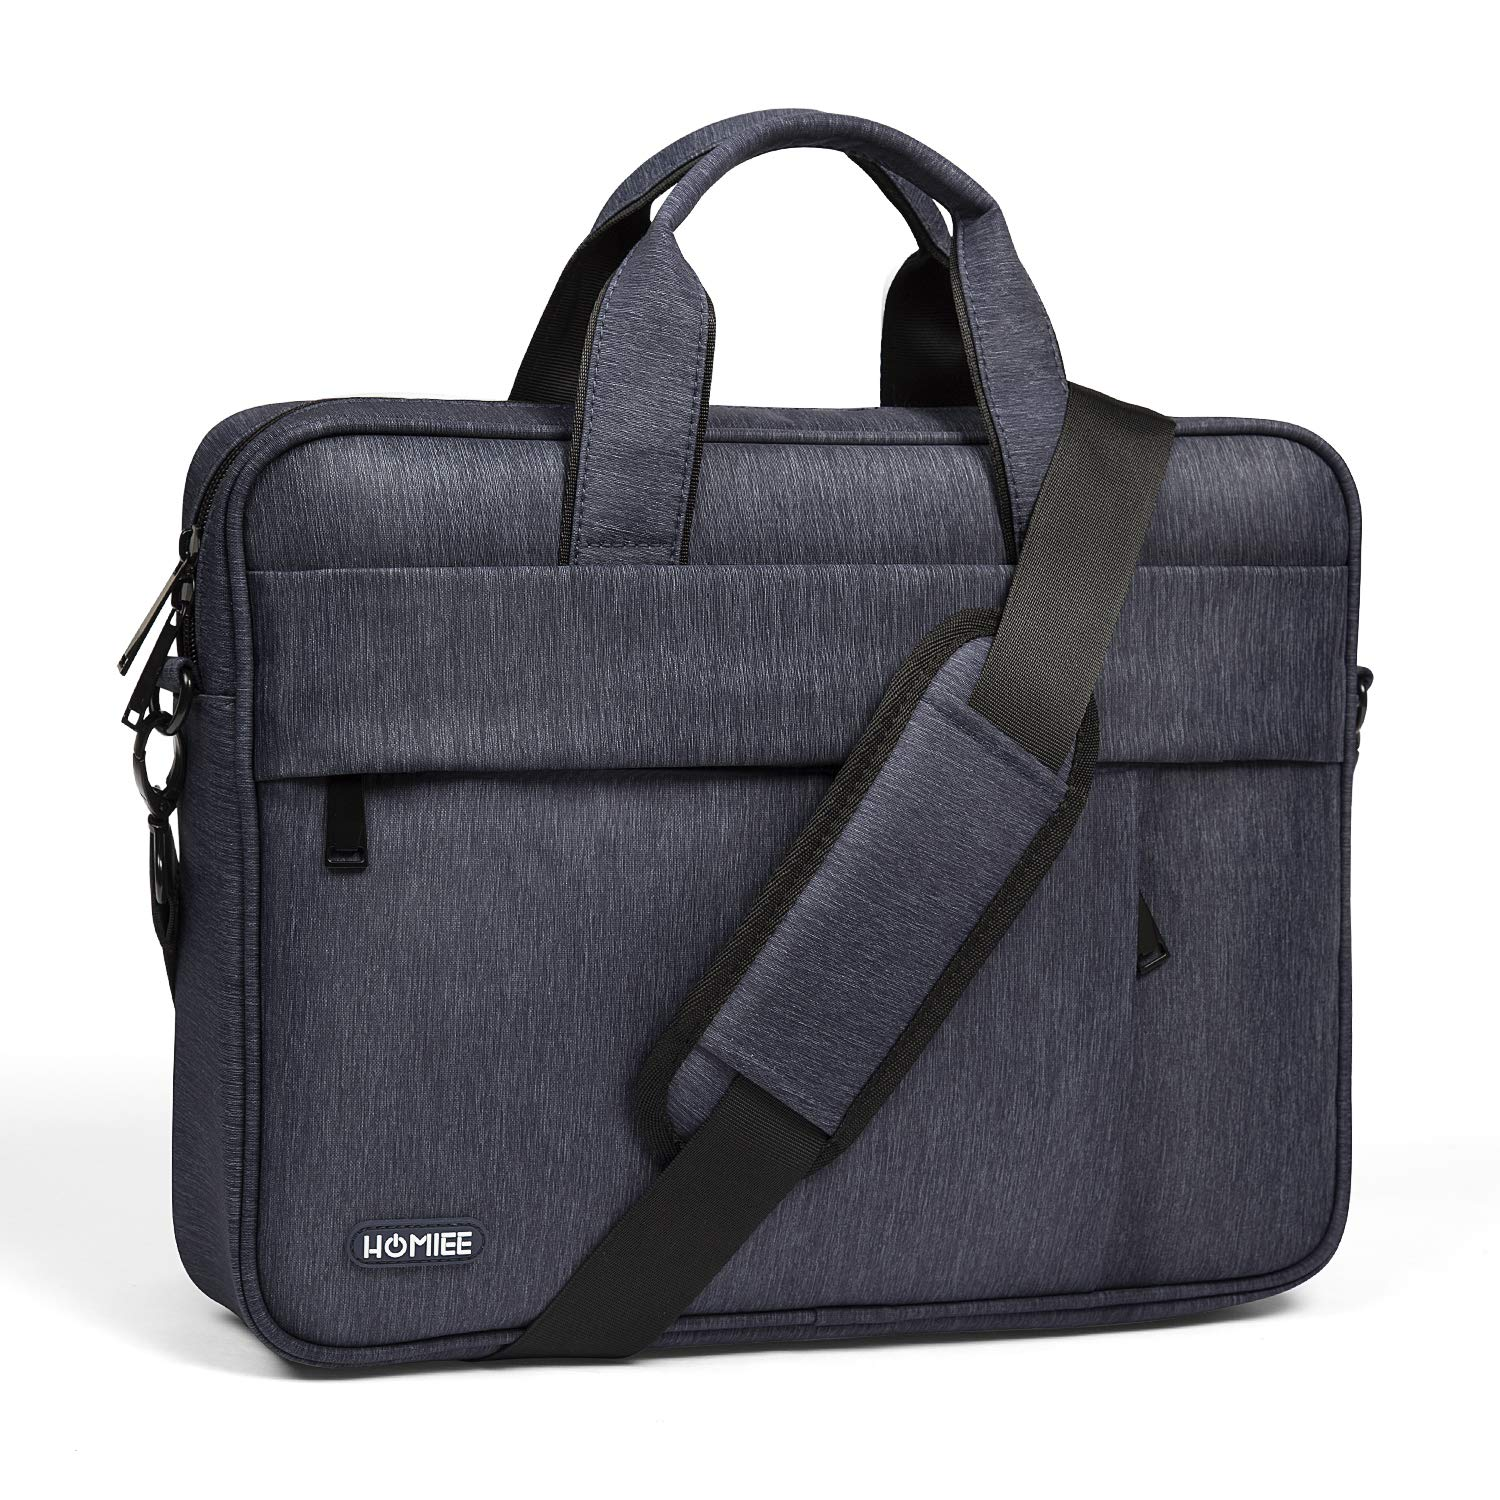 HOMIEE 13-14 Inch Laptop Shoulder Bag, Protective Laptop Bag Waterproof Business Briefcases for Men & Women, Fits for MacBook Pro, MacBook Air, iPad Pro, Dell XPS, Lenovo, HP, Chromebook and More SB1301B